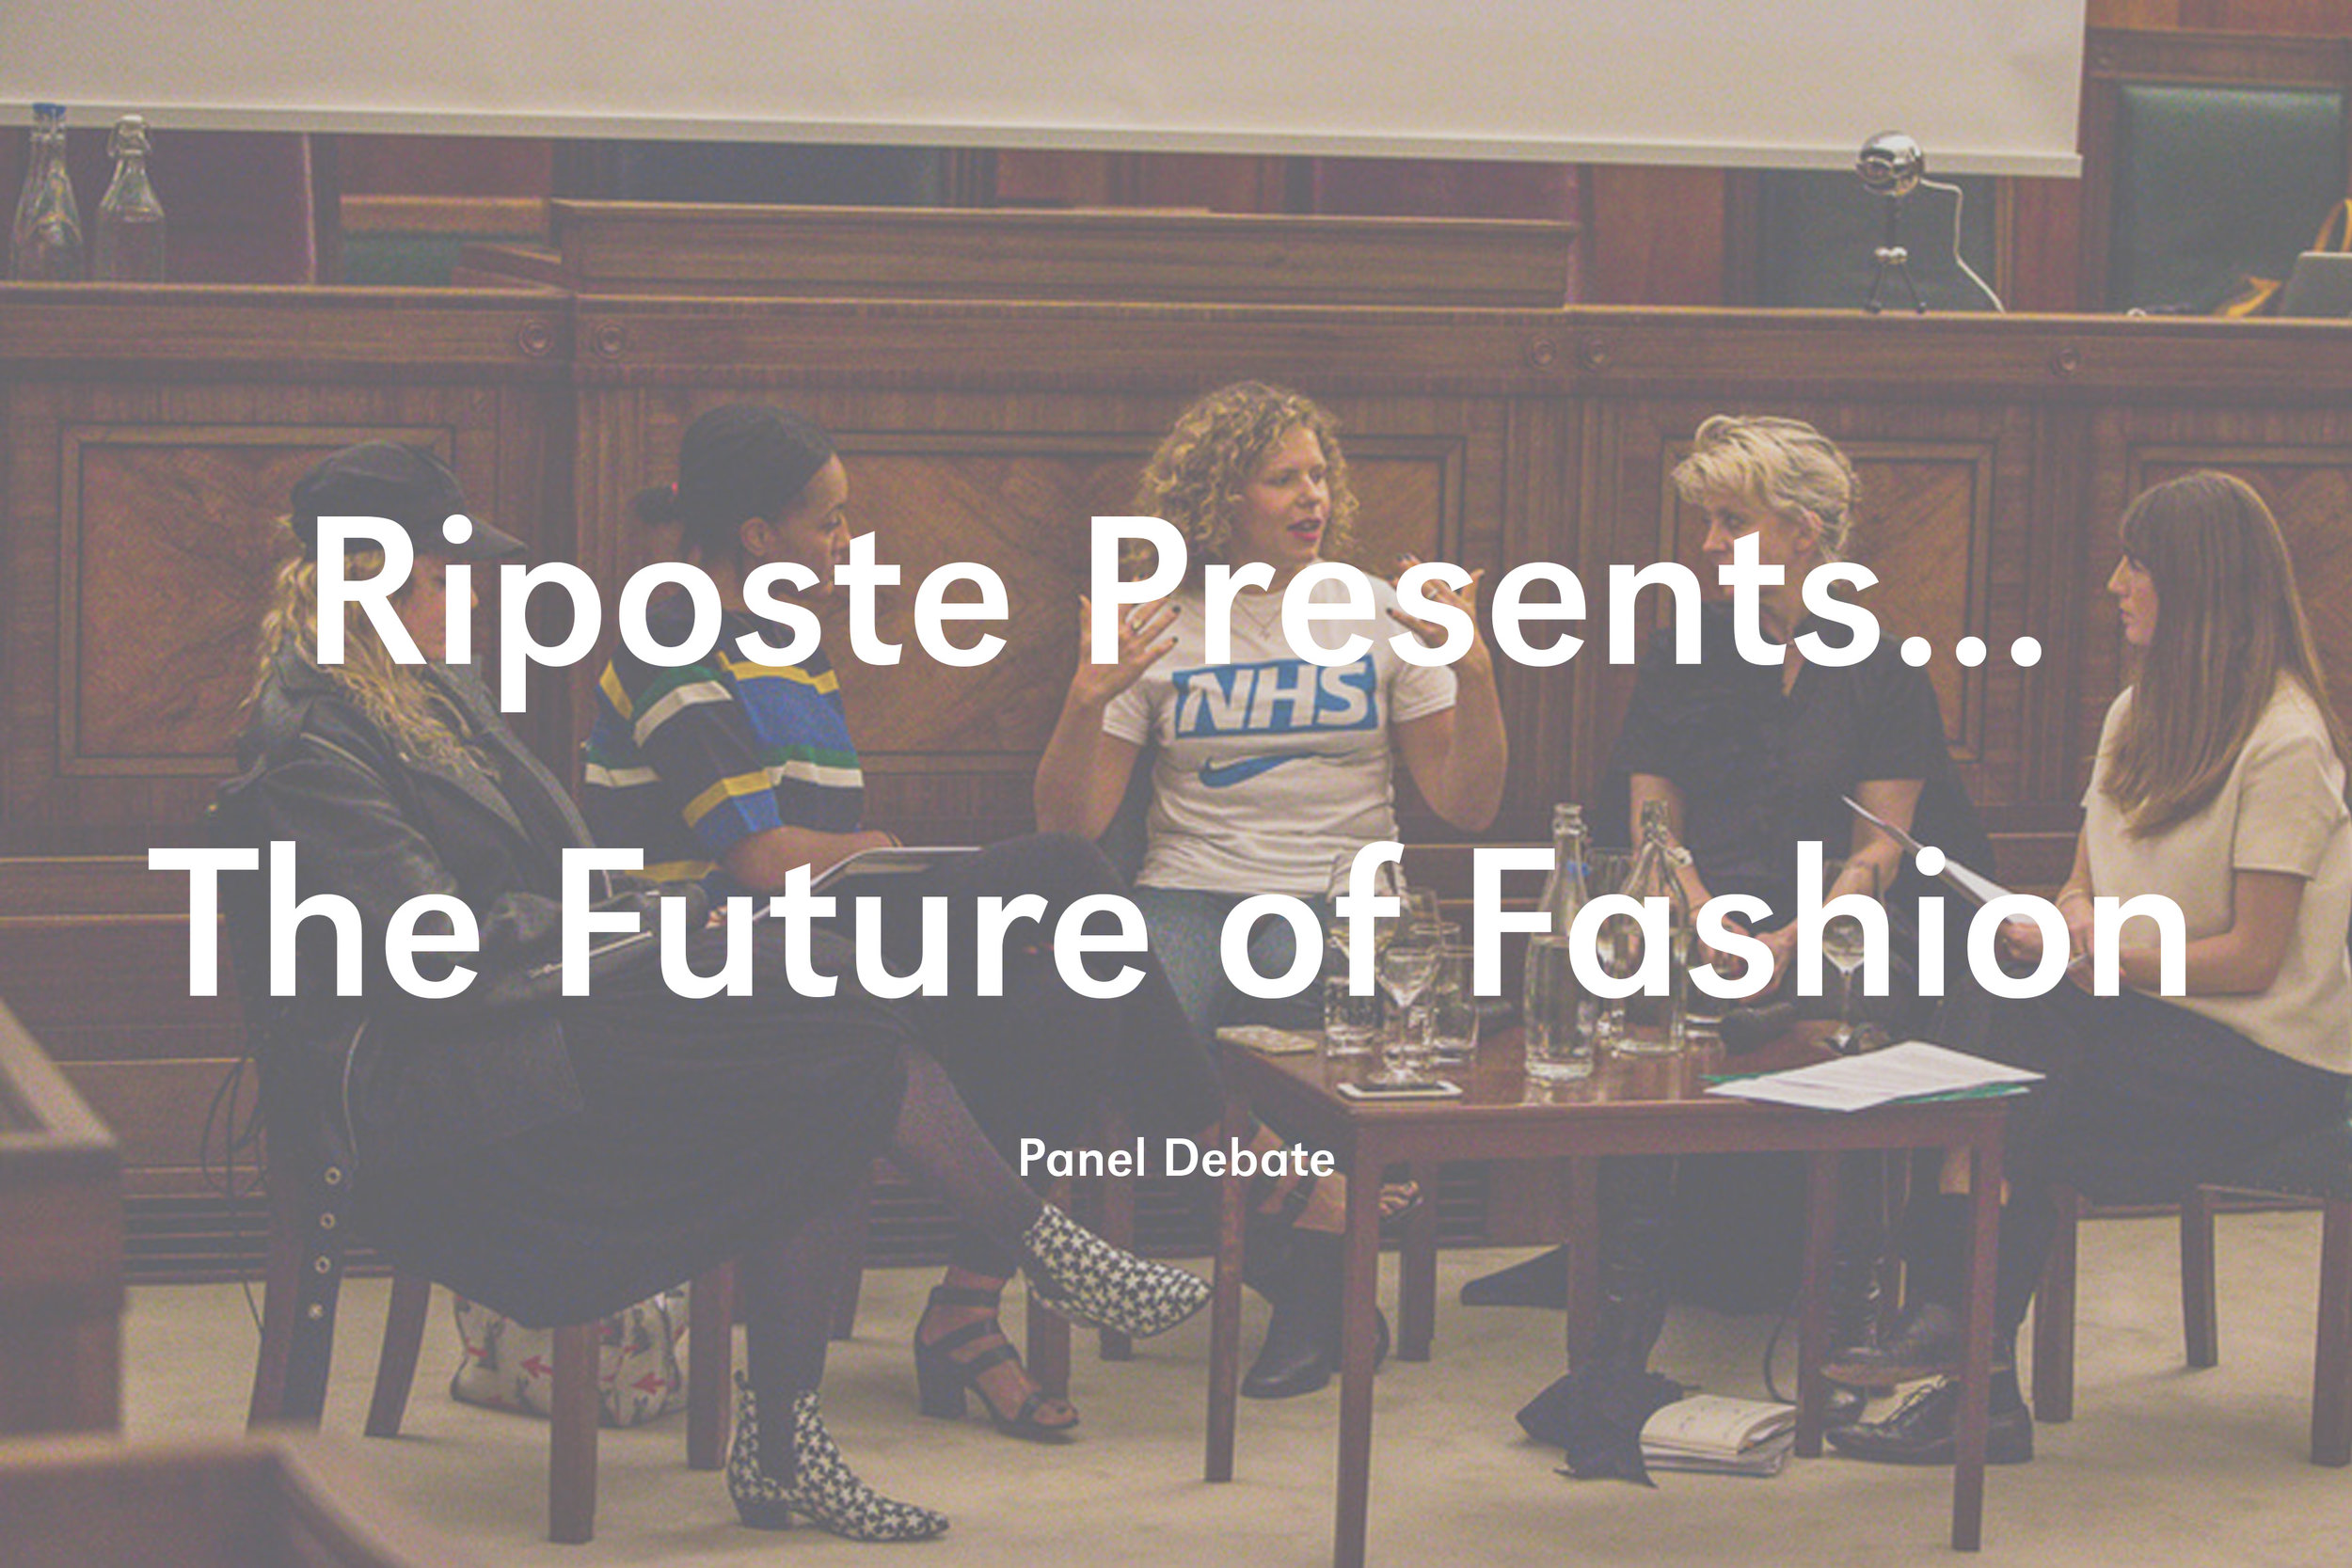 Riposte Presents... The Future of Fashion Panel Debate